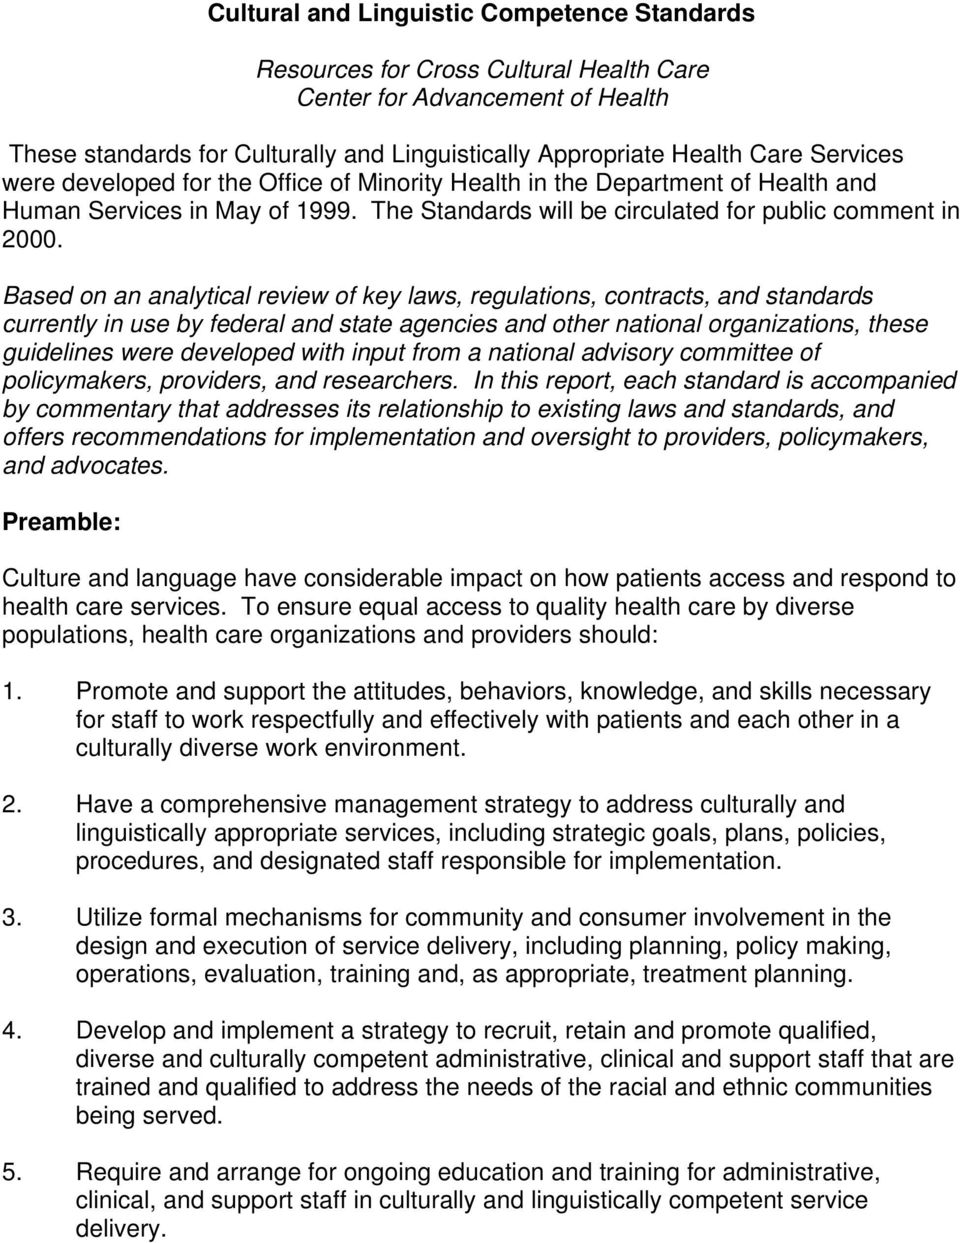 promoting cultural diversity strategies for health care professionals